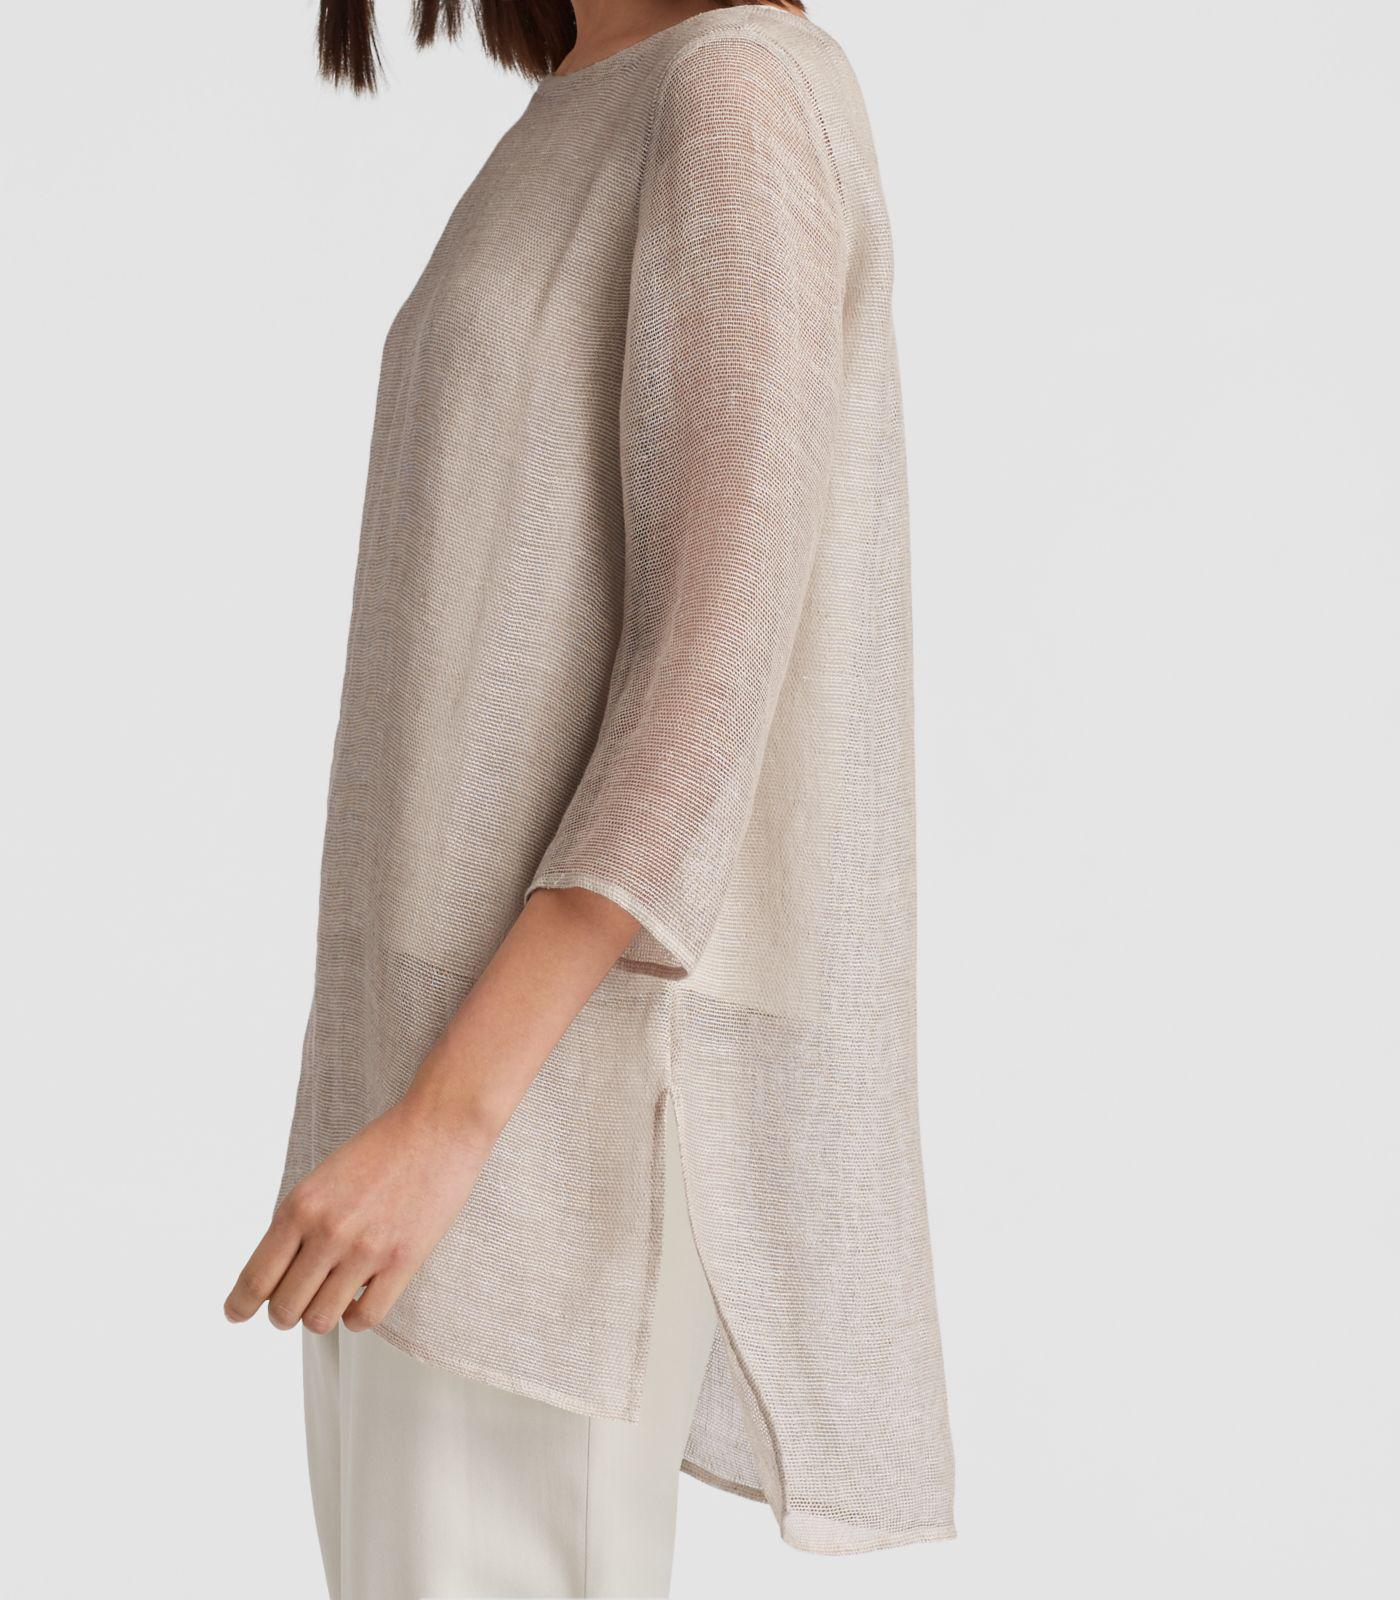 54efaa5743 Lyst - Eileen Fisher Organic Linen Mesh A-line Tunic in Natural